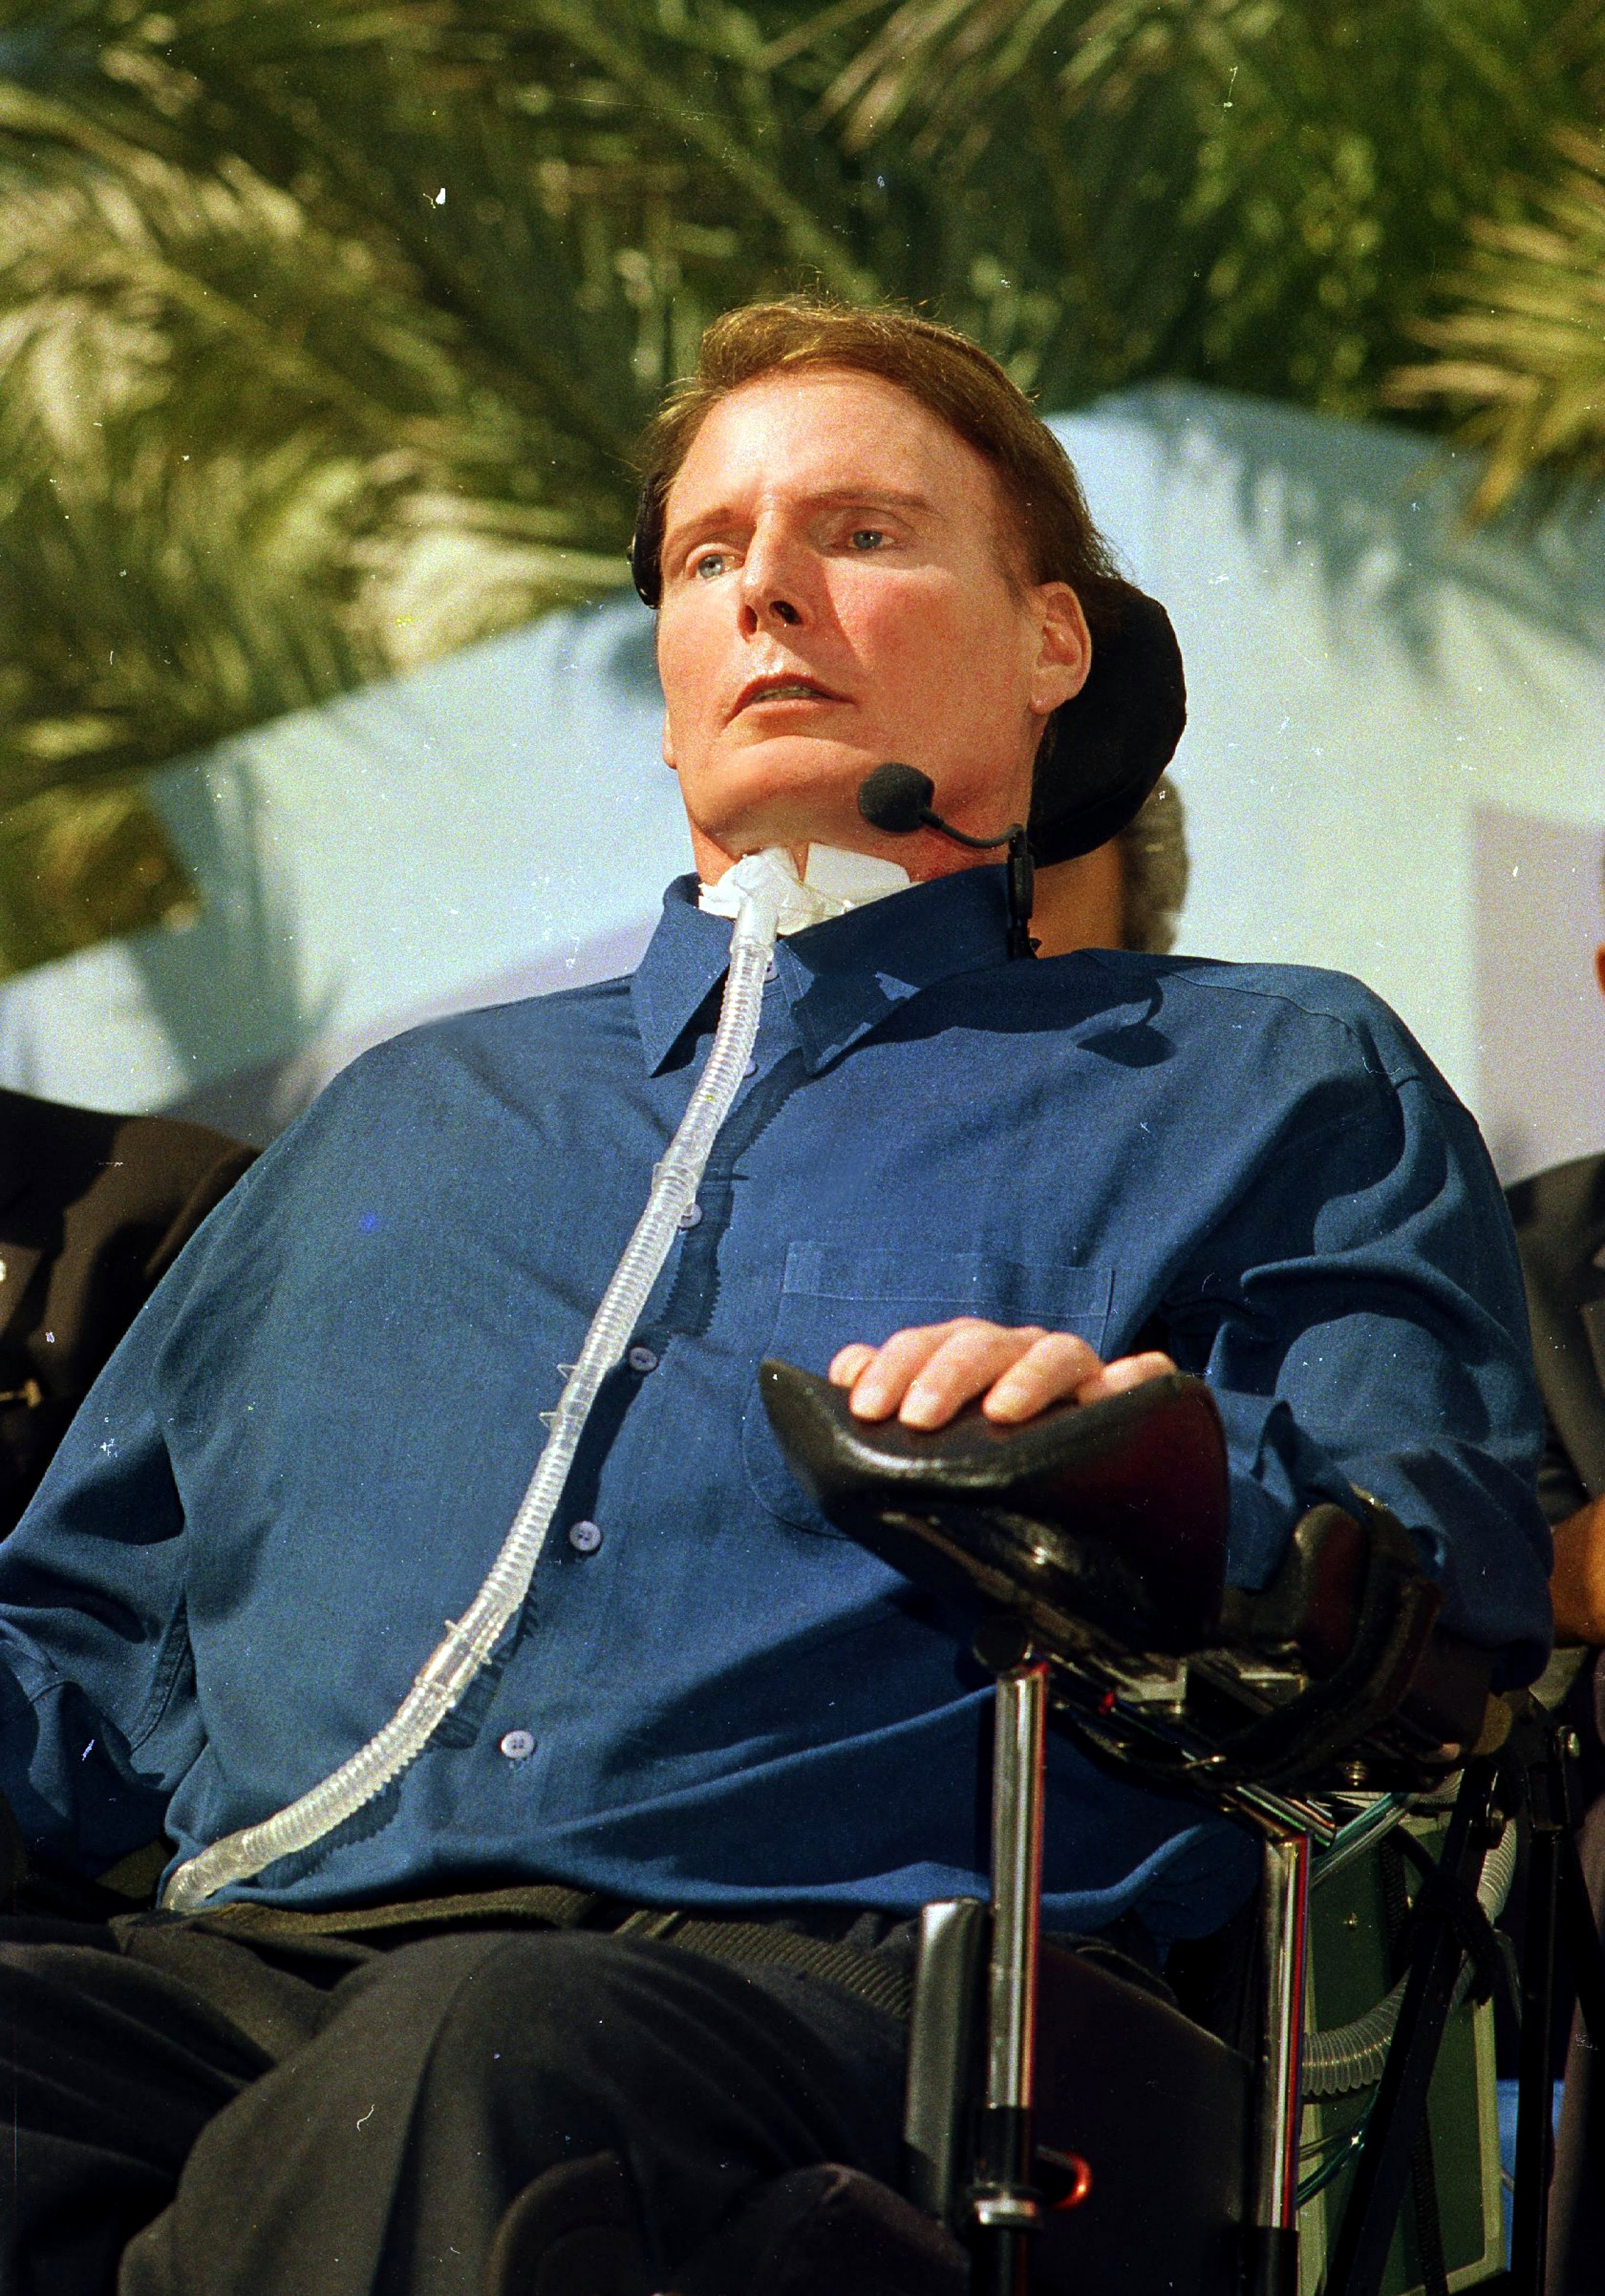 Chris Reeve in wheelchair in Miami, 2000 | Photo: Getty Images